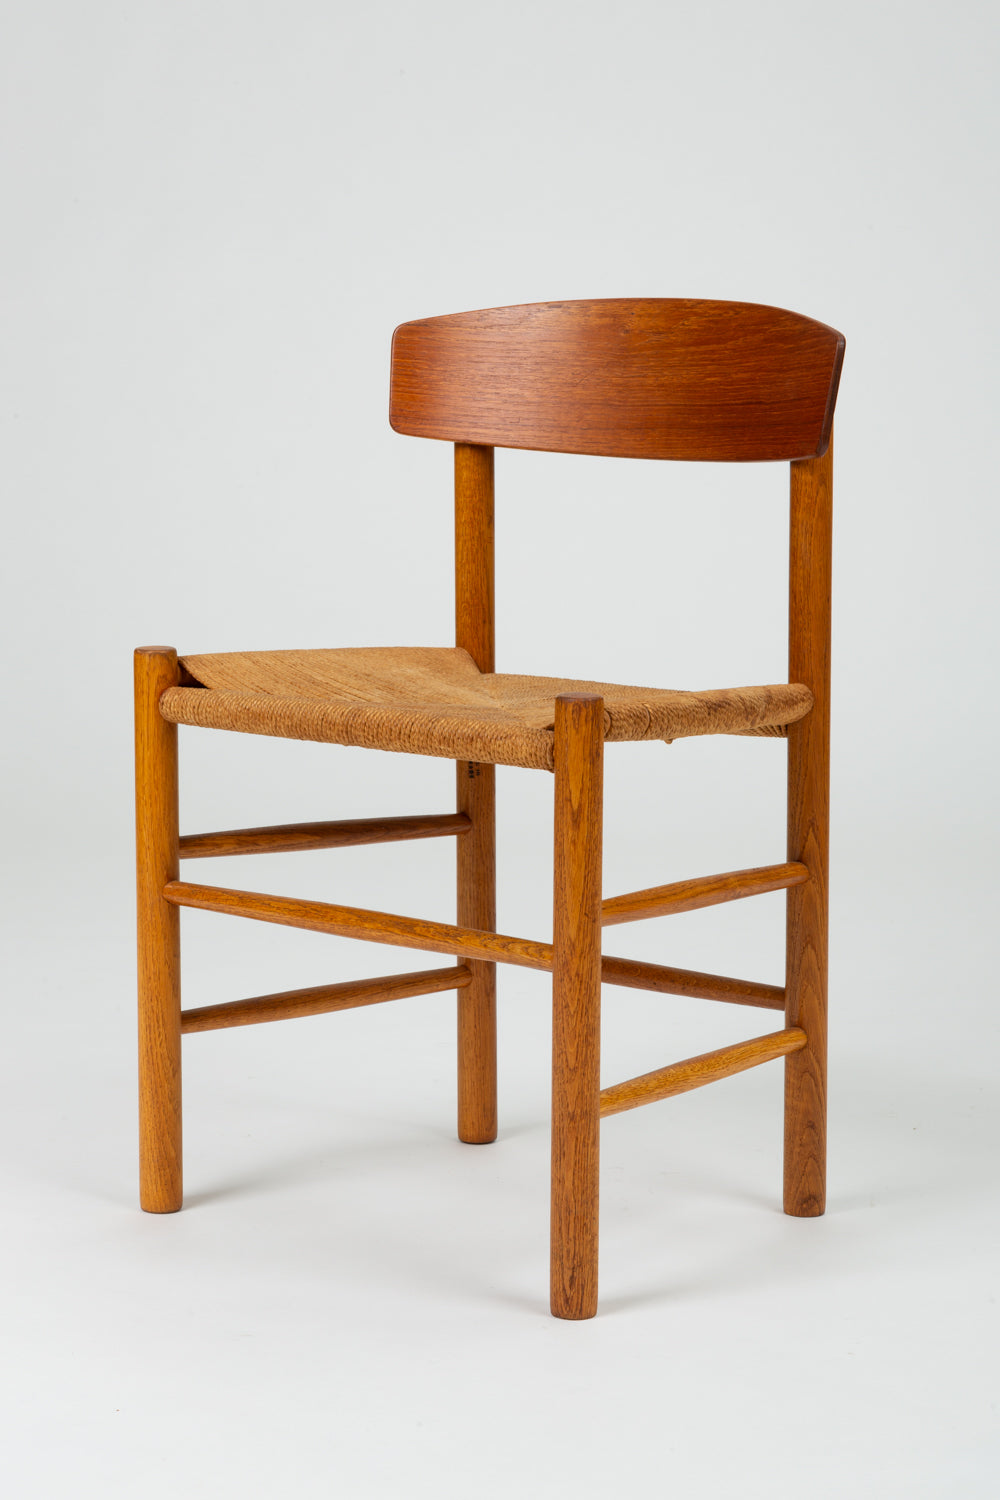 Single Børge Mogensen J39 Dining or Accent Chair